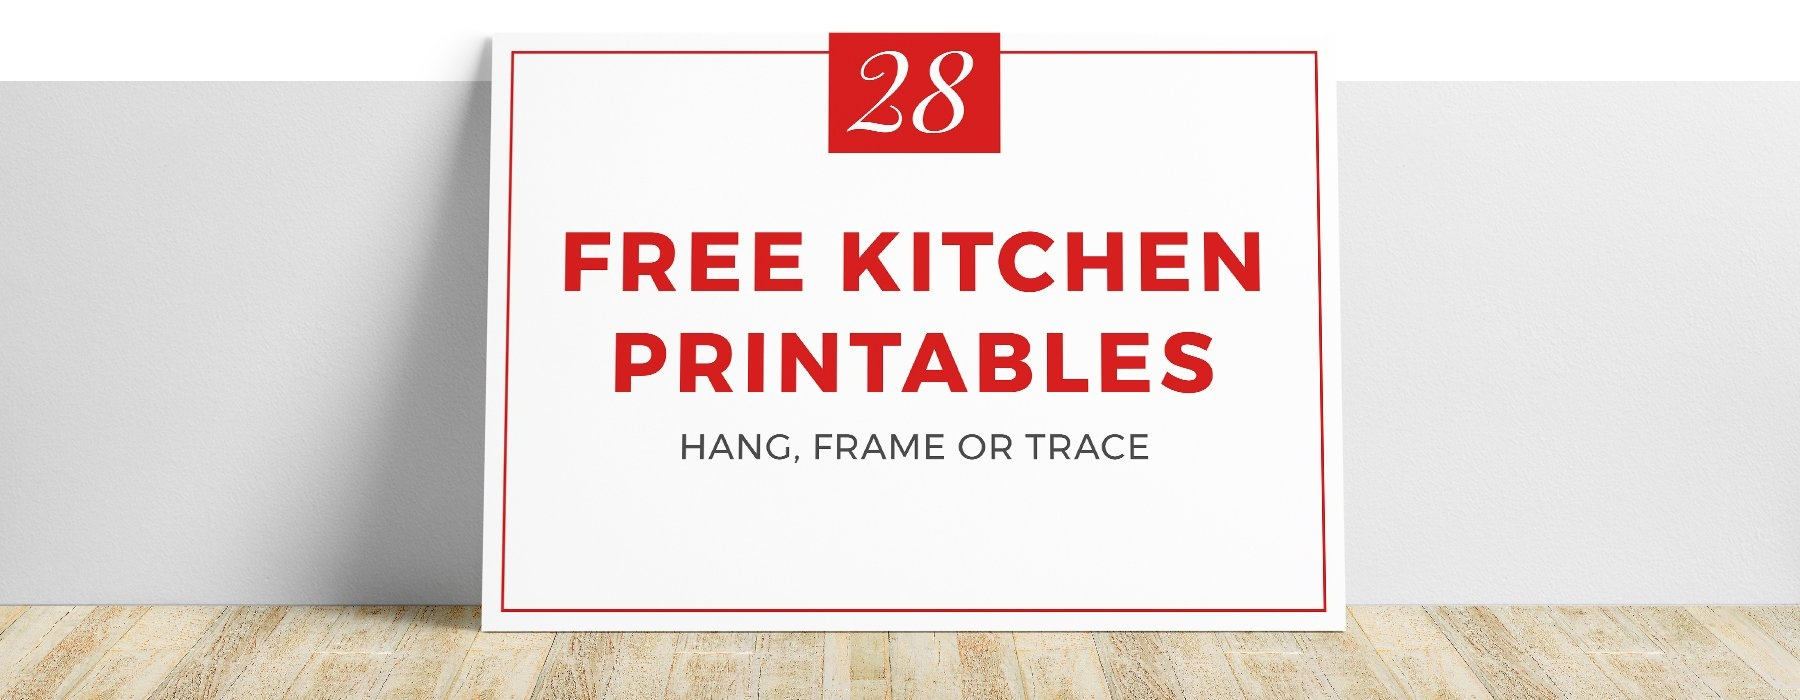 28 Free & Fun Kitchen Printables | Kitchen Cabinet Kings - Free Kitchen Printables